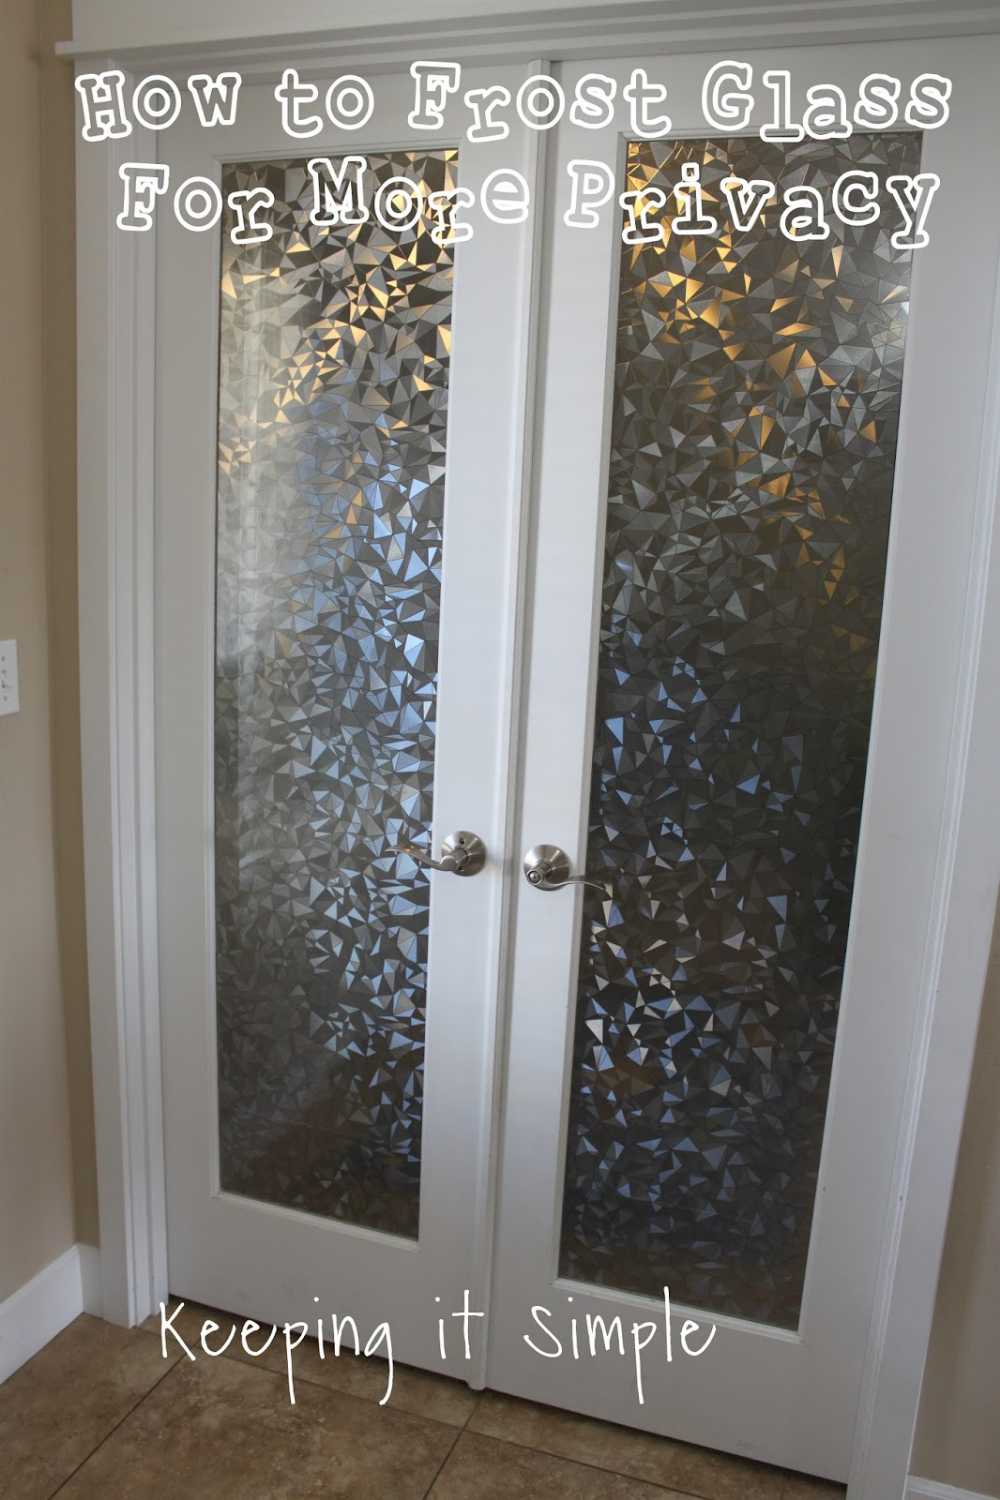 How To Frost Glass With Vinyl For More Privacy Keeping It Simple Frosted Glass Window Diy Frosted Glass Window Frosted Glass Diy